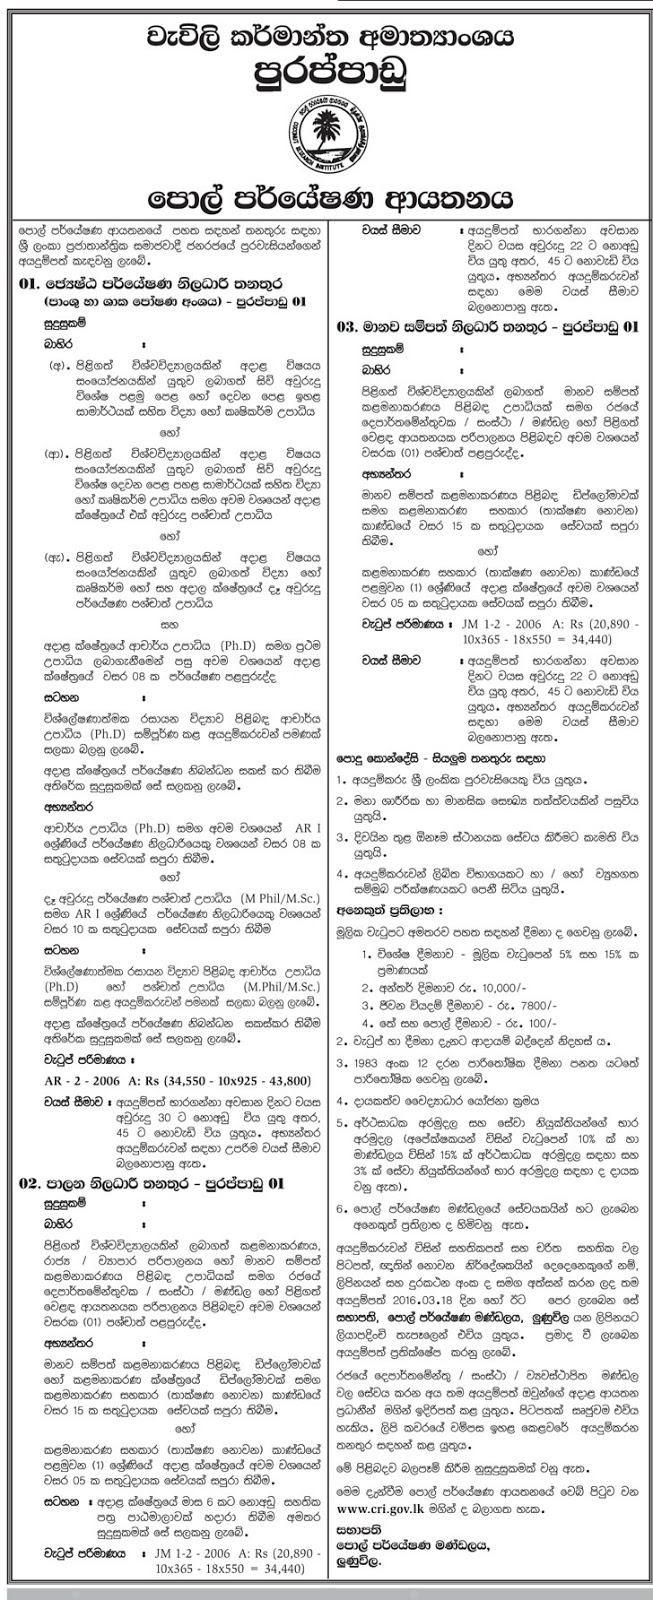 Vacancies - Jyoti Senior research officer - Administrative Officer - Human Resources Officer - CRI - Ministry of Plantation Industries